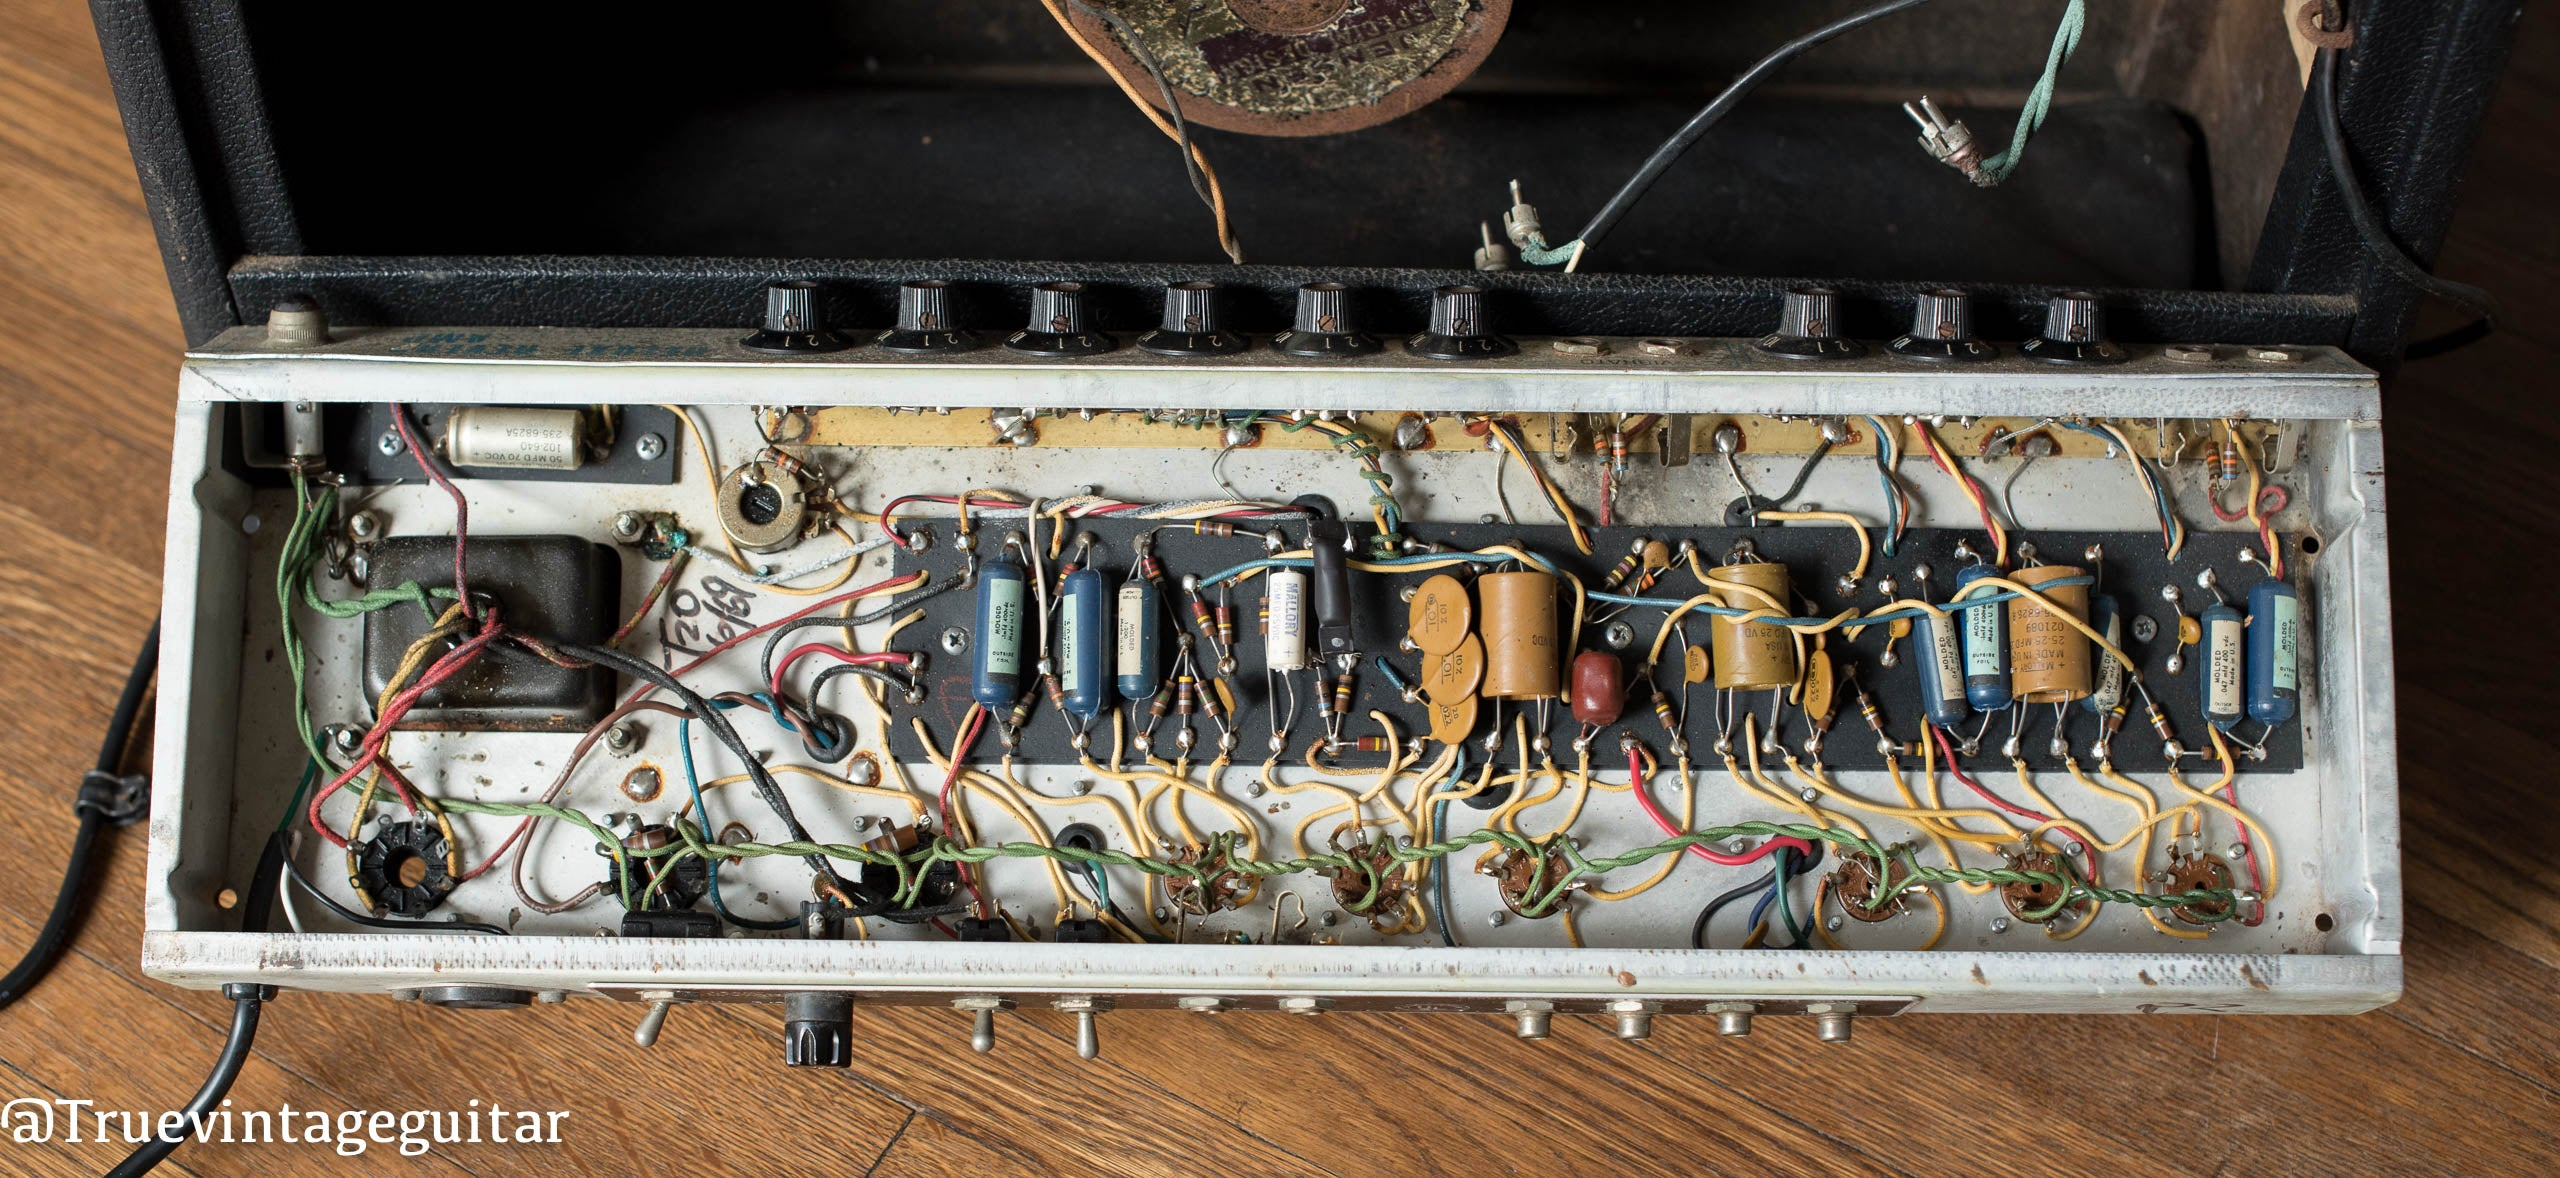 Fender chassis, circuit board, 1969 Deluxe Reverb